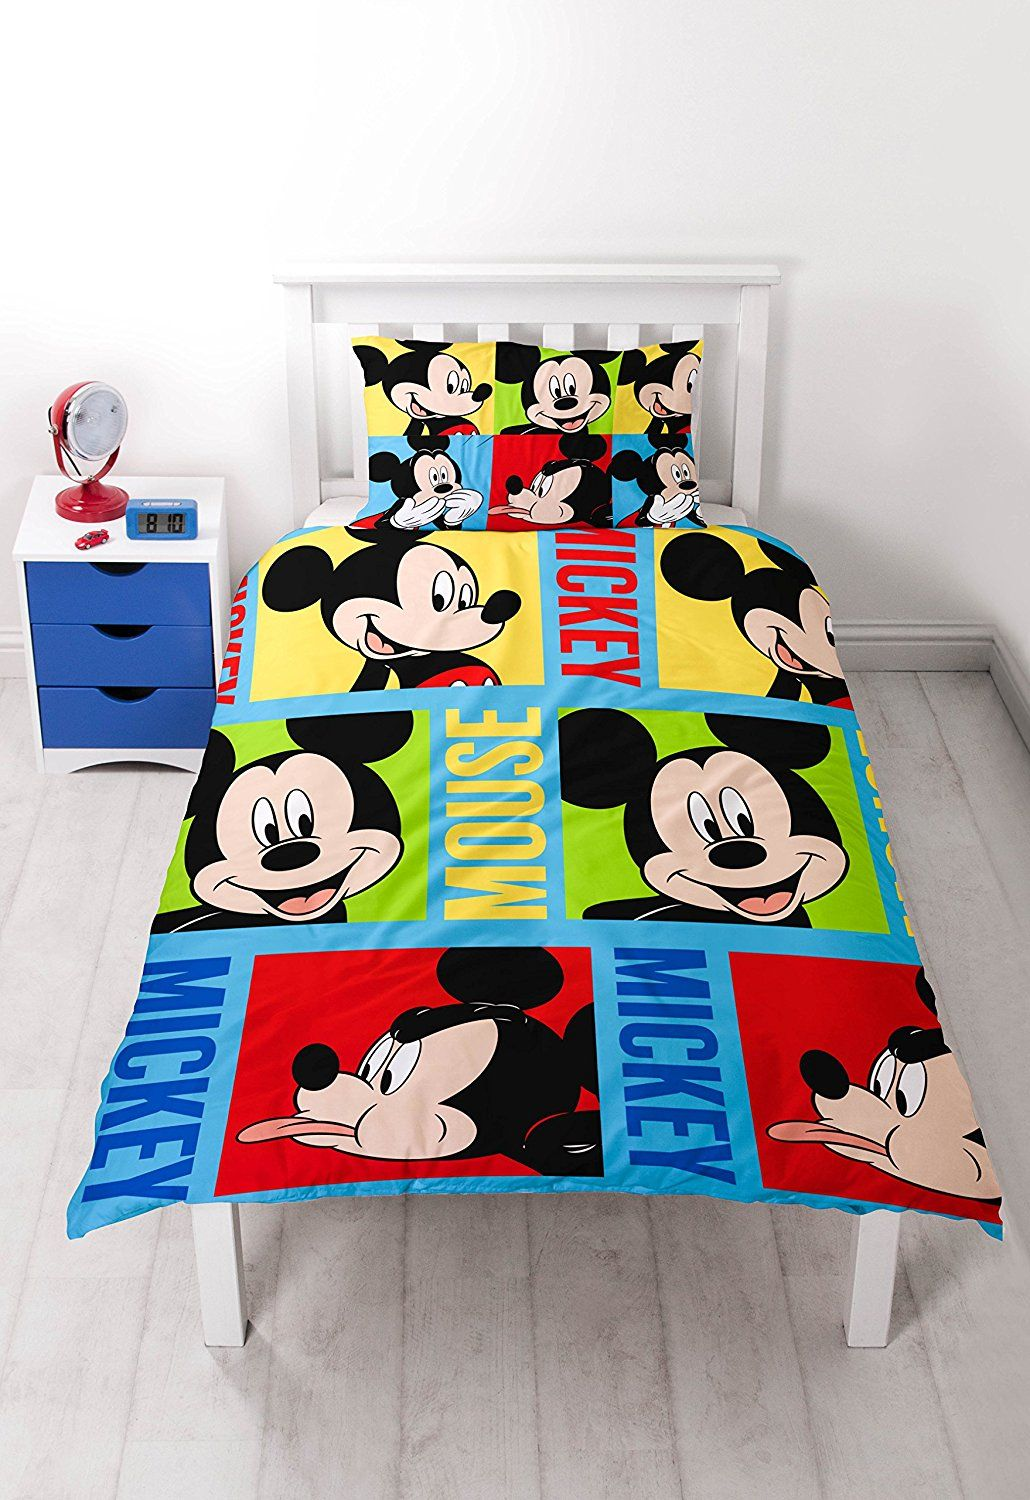 Fototapete Kinderzimmer Minnie Mouse Disney Micky Maus Bright Rotary Print Bettwäsche Set Dieses